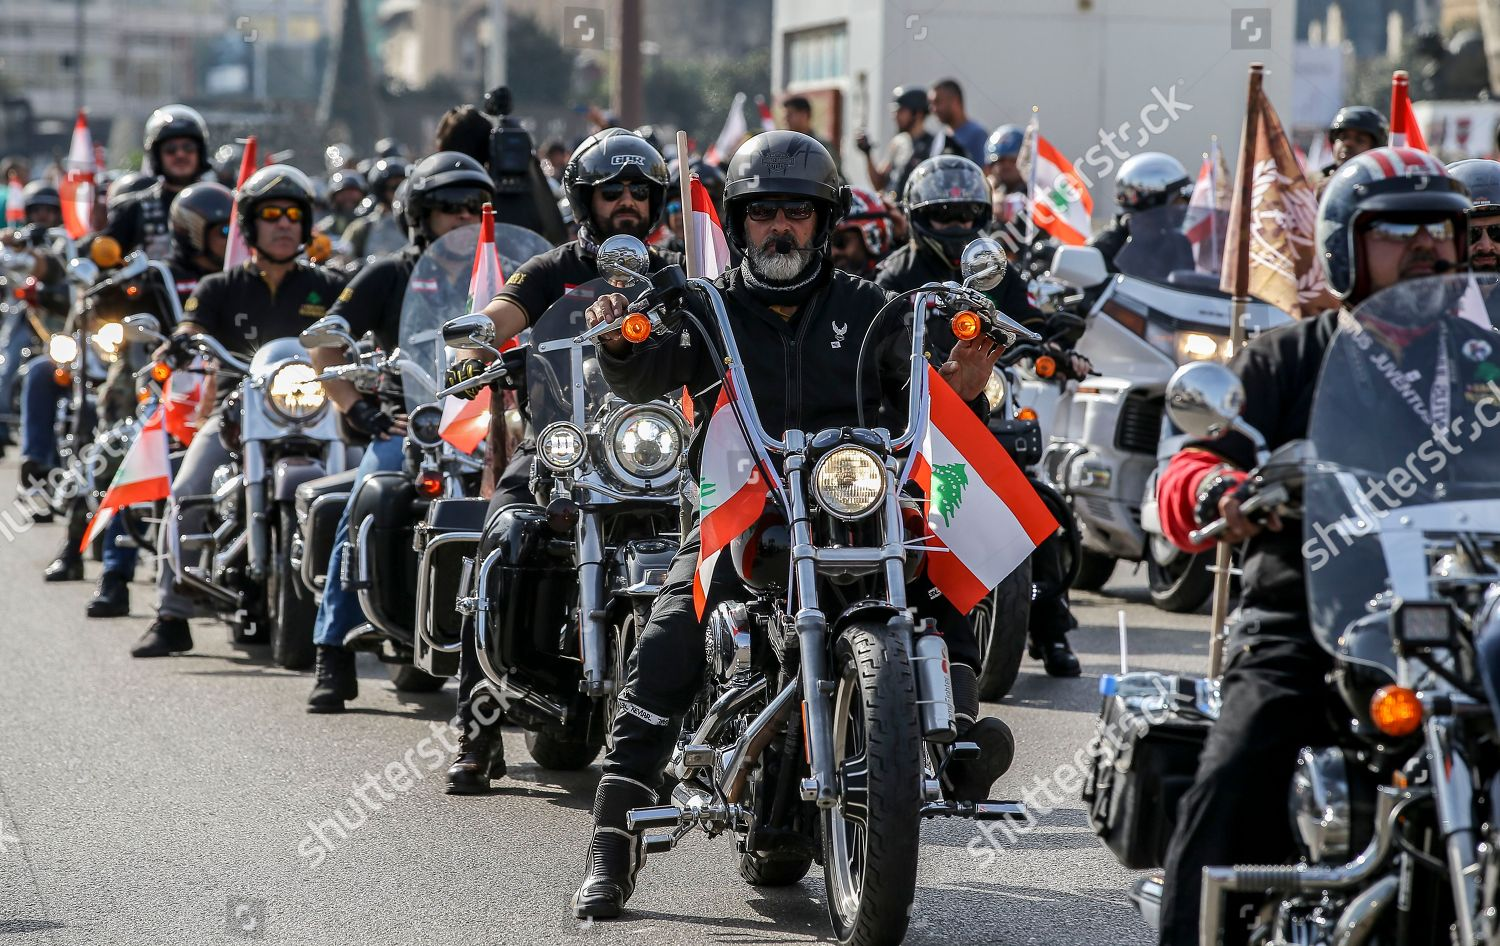 harley davidson bikers lebanese flags participate rally editorial